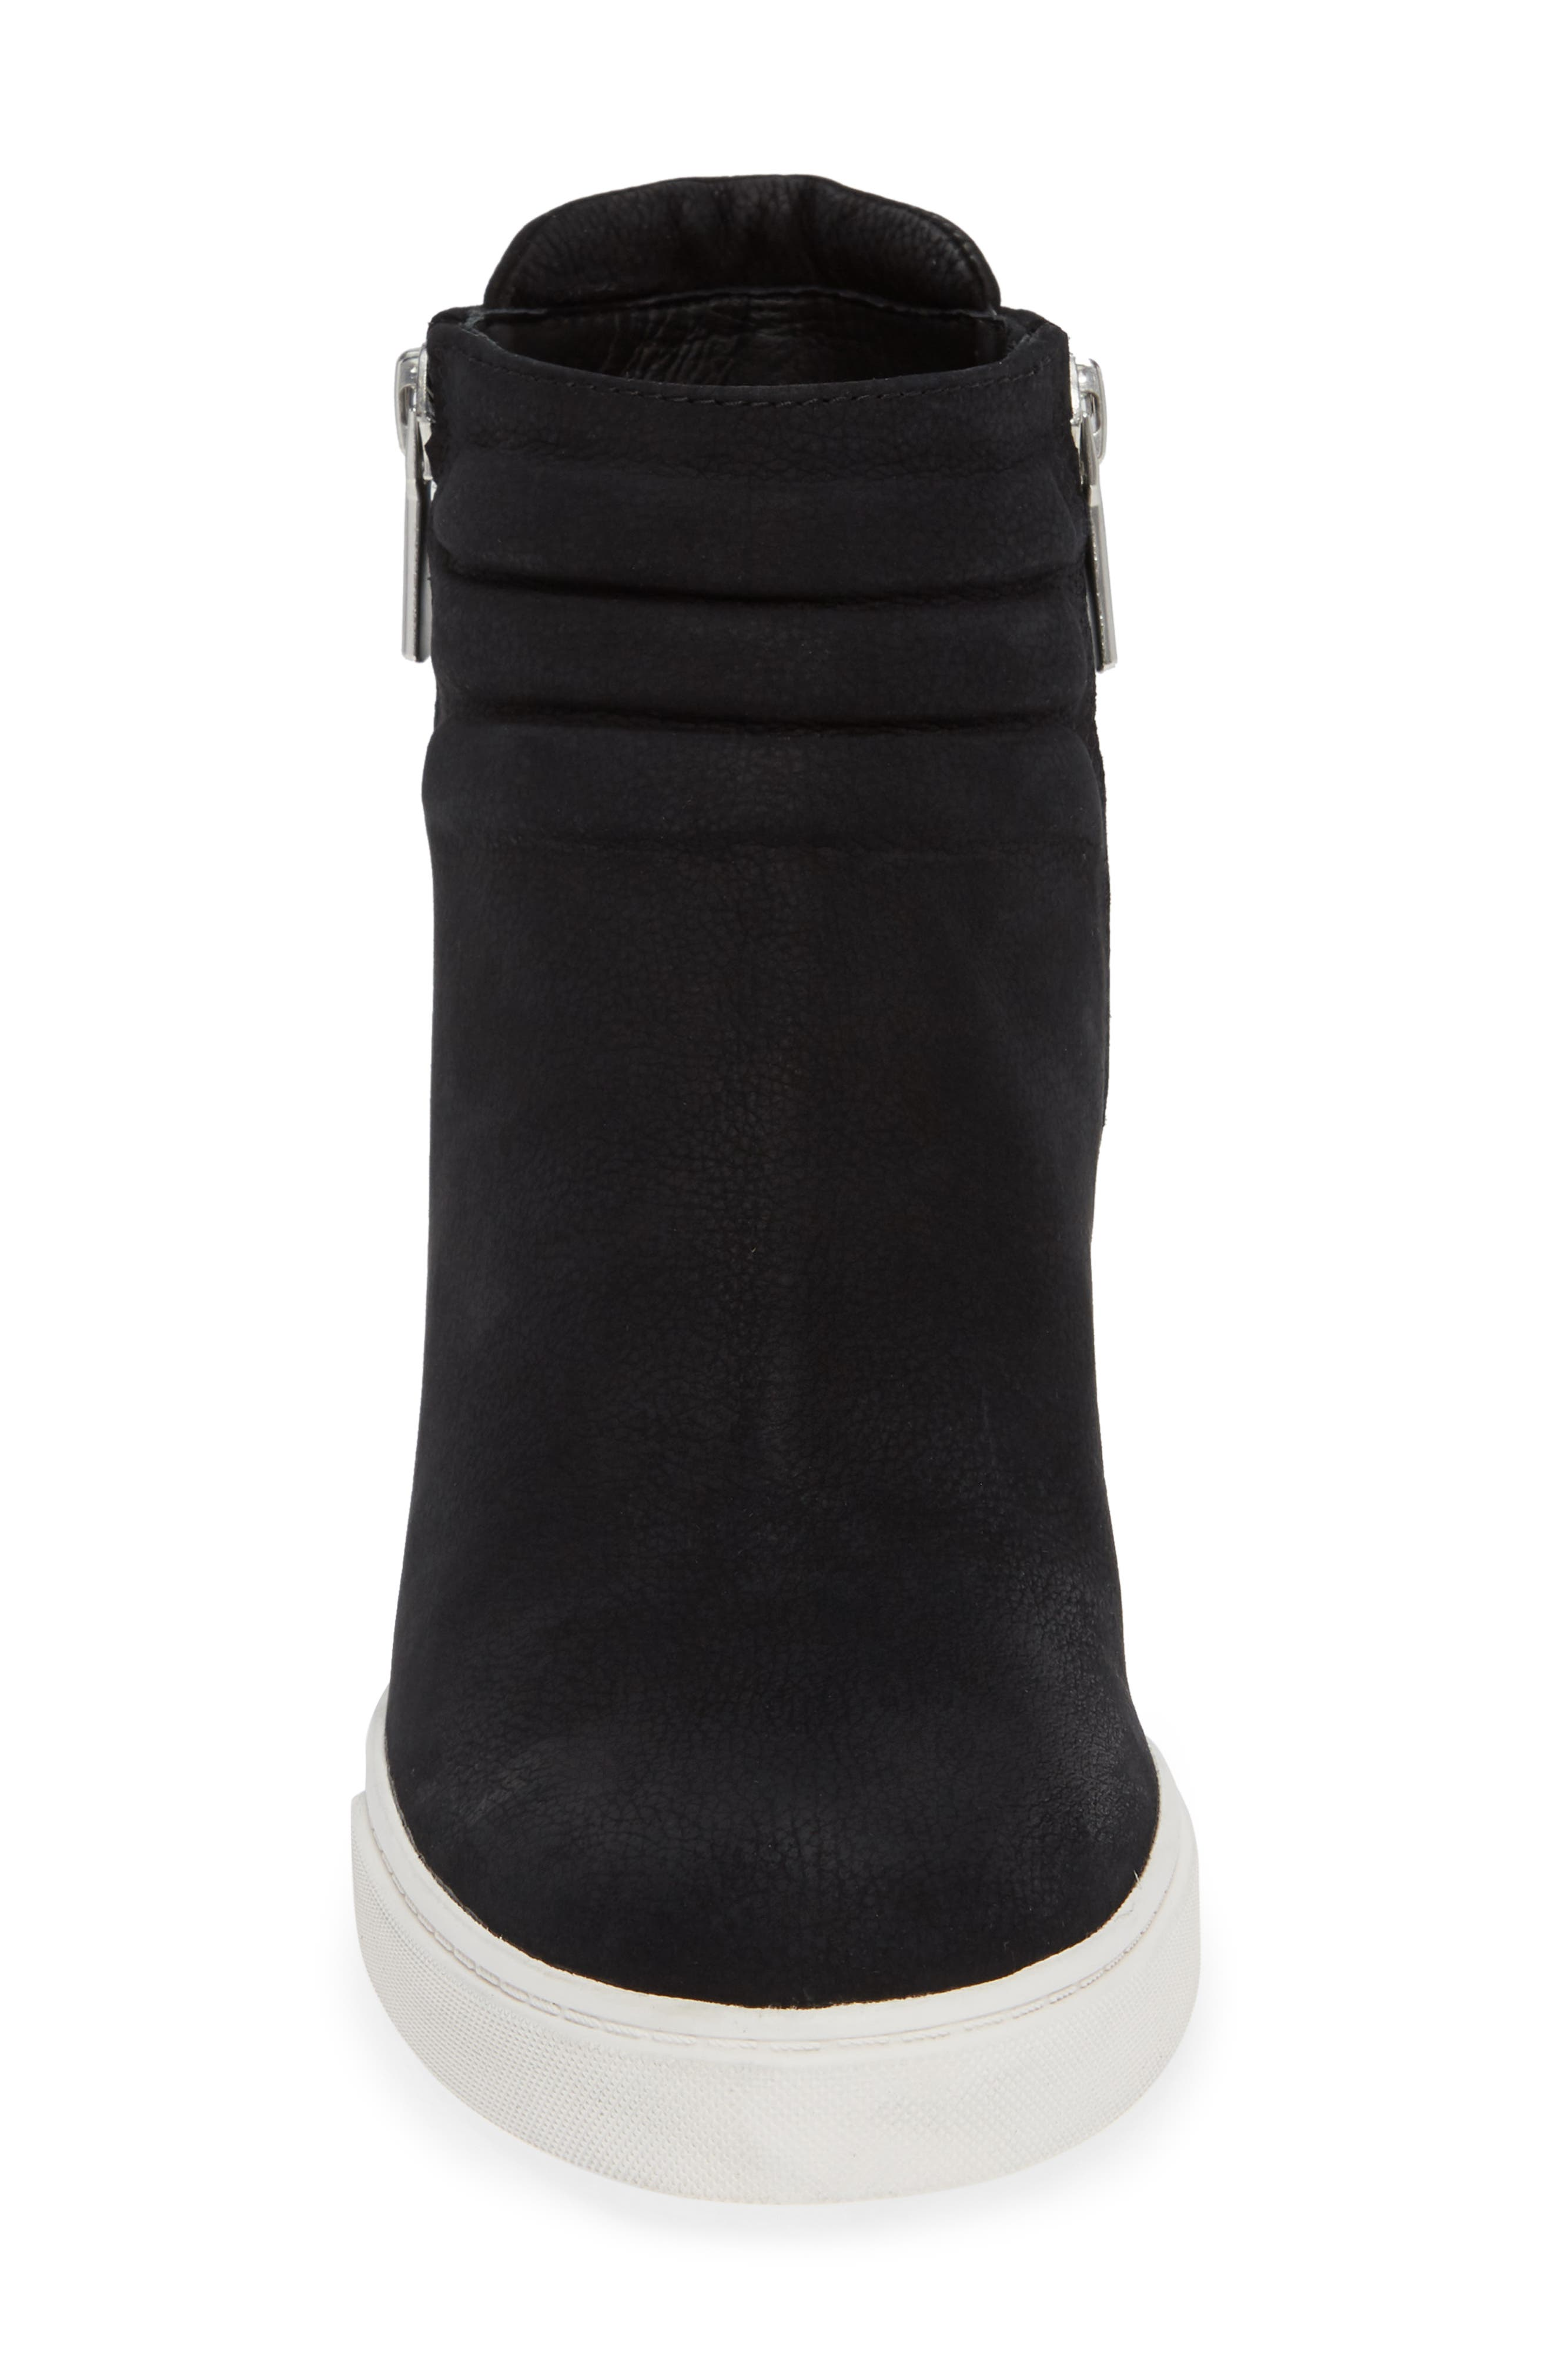 LINEA PAOLO, Flo Waterproof Wedge Bootie, Alternate thumbnail 4, color, BLACK LEATHER